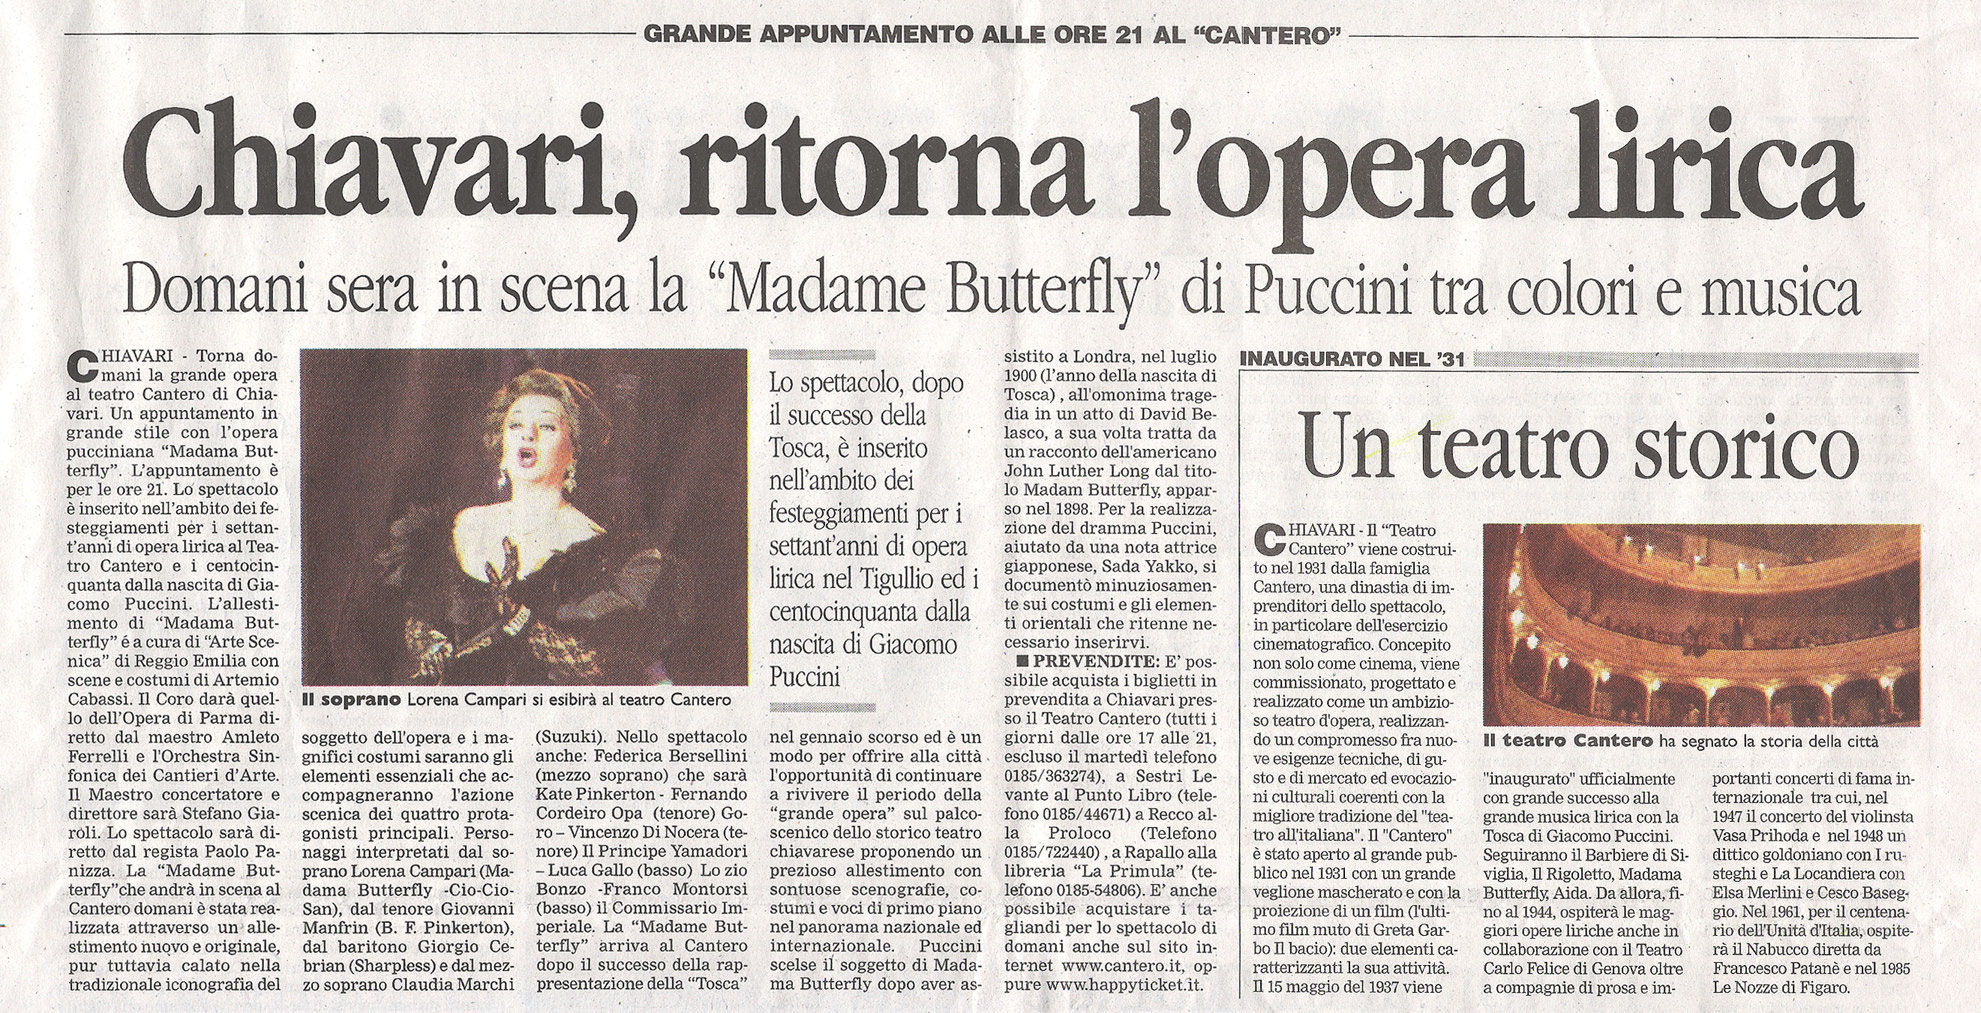 17.04.2008 – CORRIERE MERCANTILE – Madama Butterfly